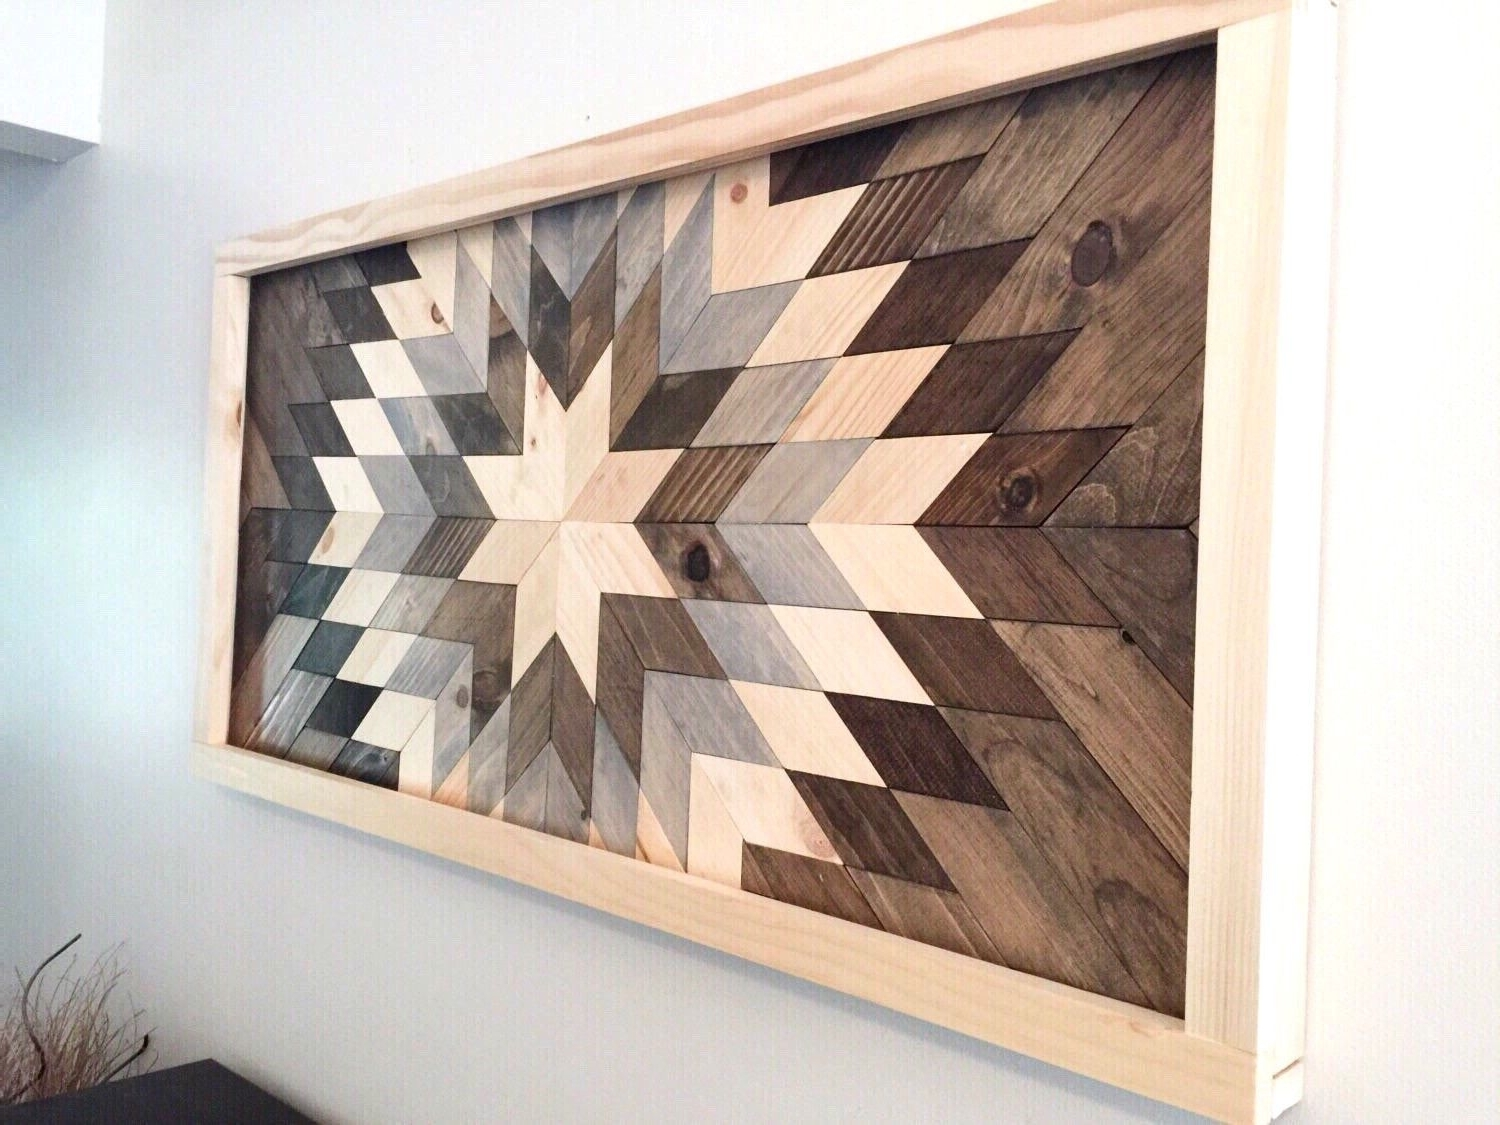 Wood Wall Art New Wood Wall Decor – Wall Art And Wall Decoration Ideas Regarding Favorite Wood Wall Art (View 3 of 15)